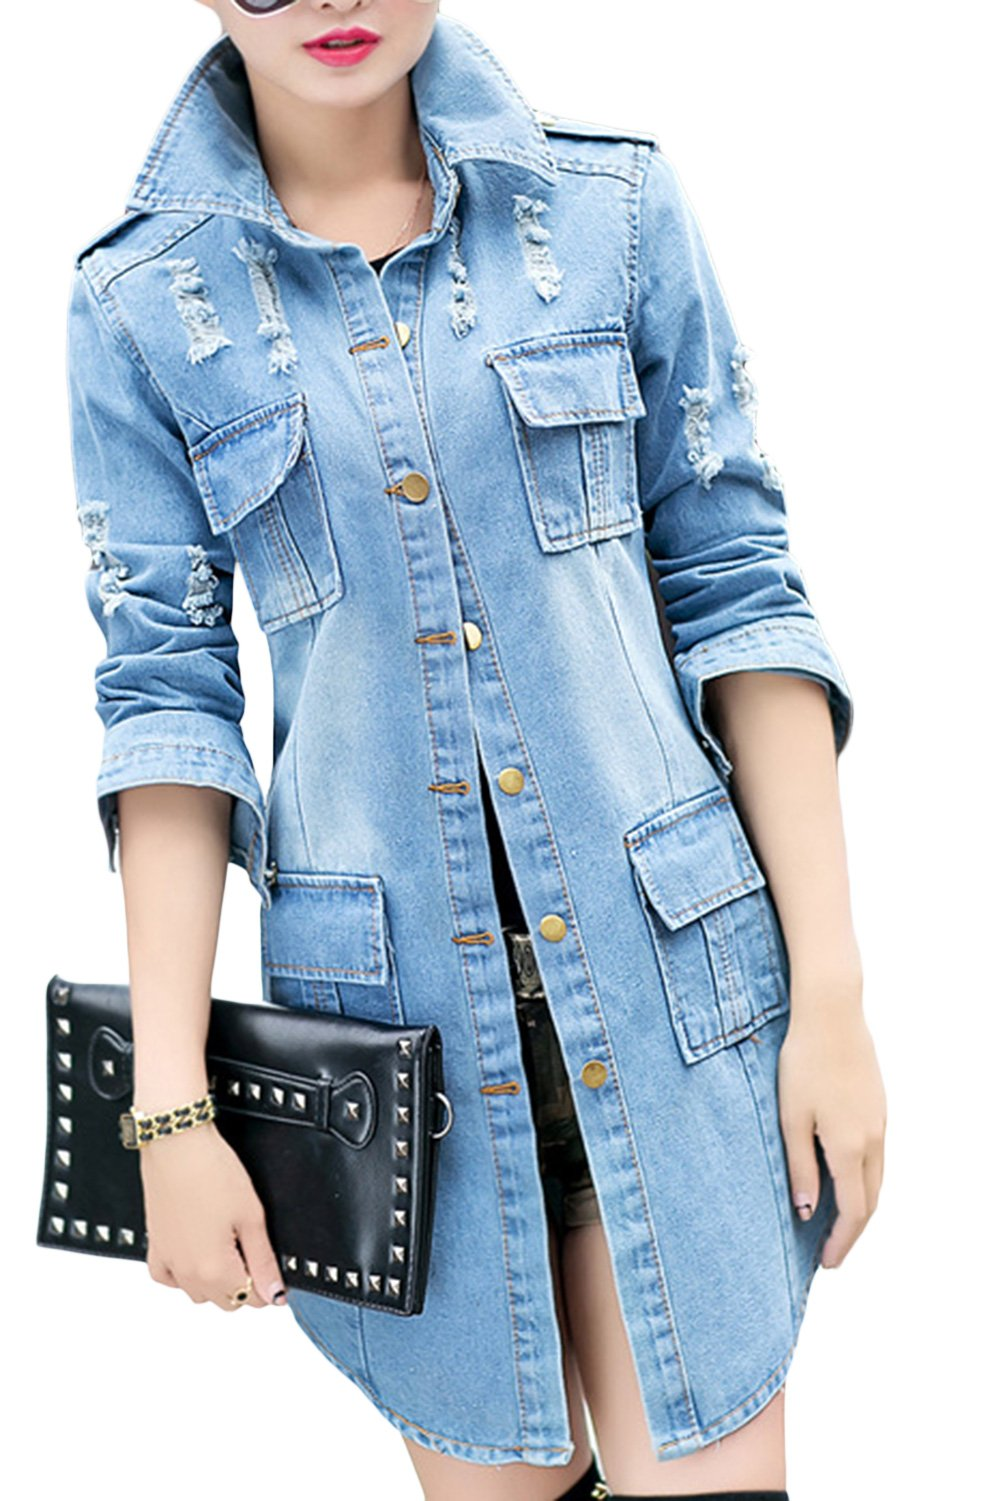 sandbank Women's Stylish Slim Fit Long Sleeve Ripped Jean Denim Jacket Coat Light Blue US 8